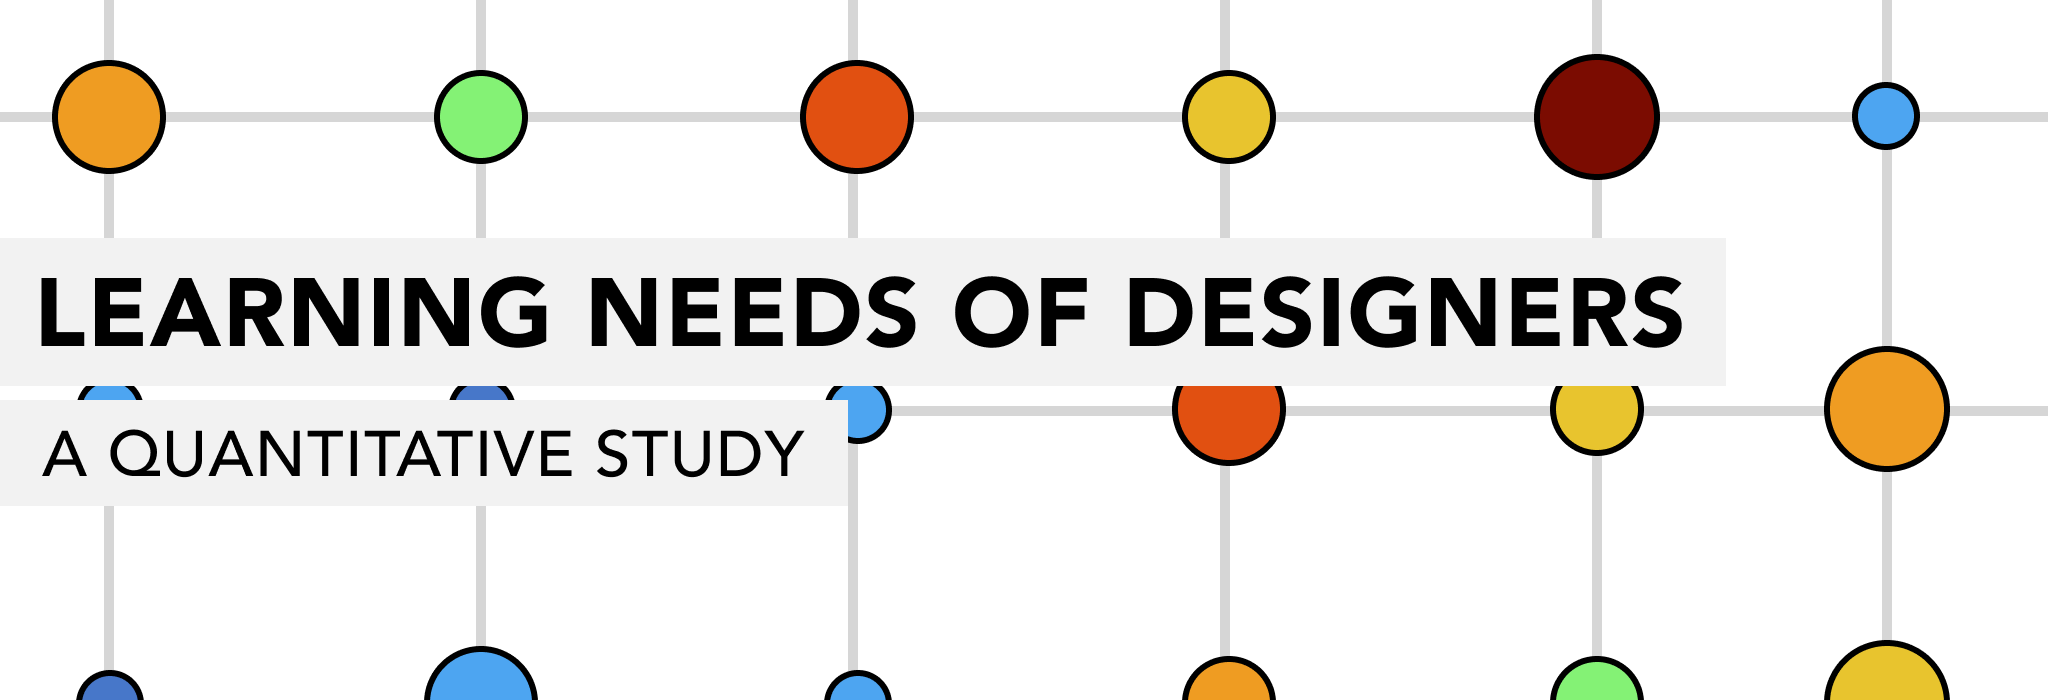 Learning Needs of Designers in Singapore — A Quantitative Study